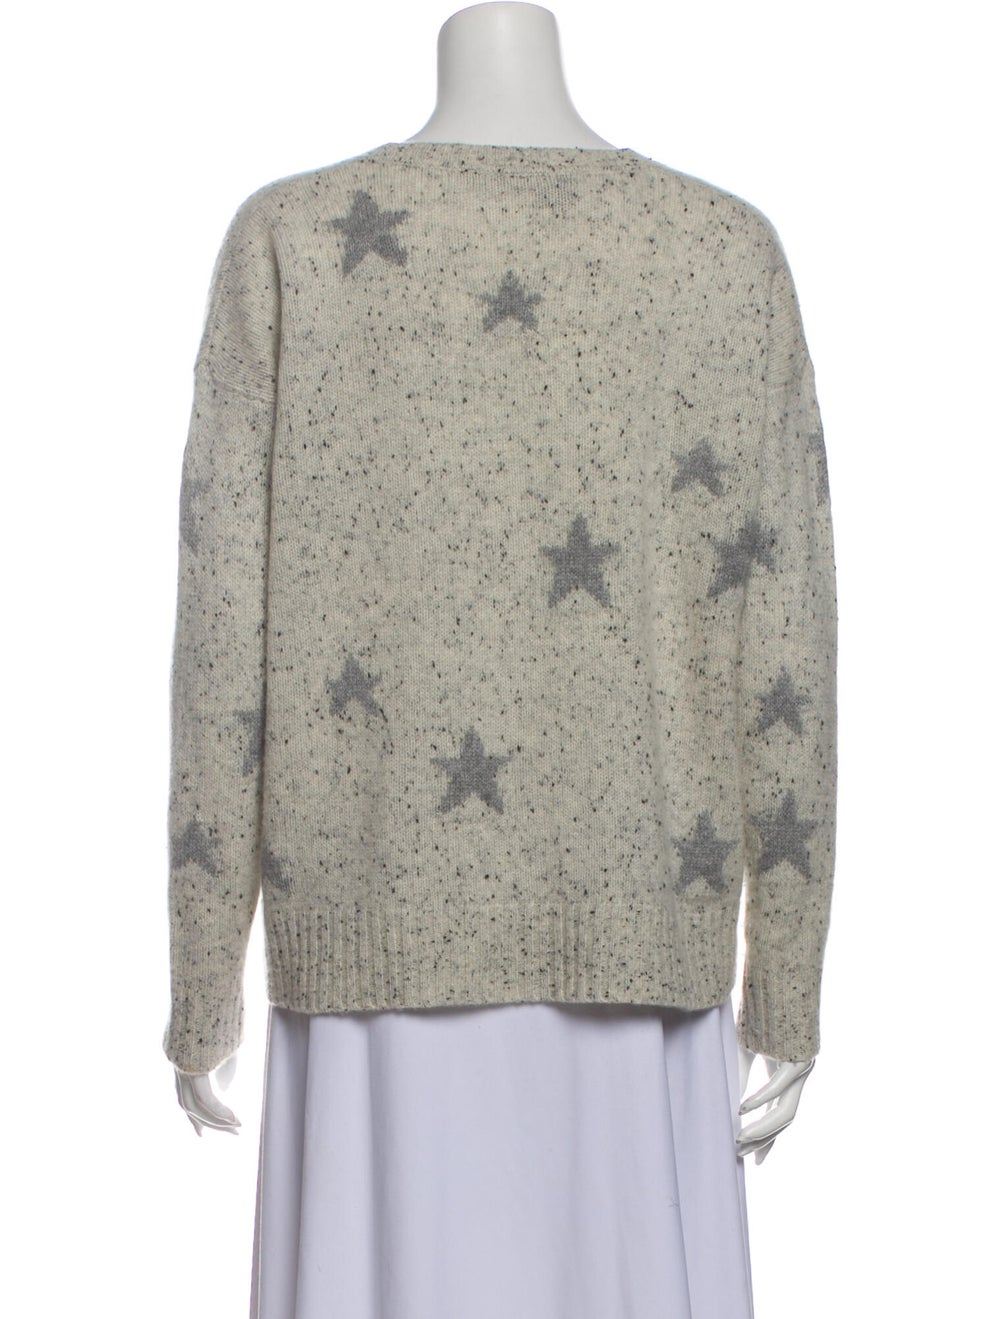 360 Cashmere Cashmere Printed Sweater - image 3